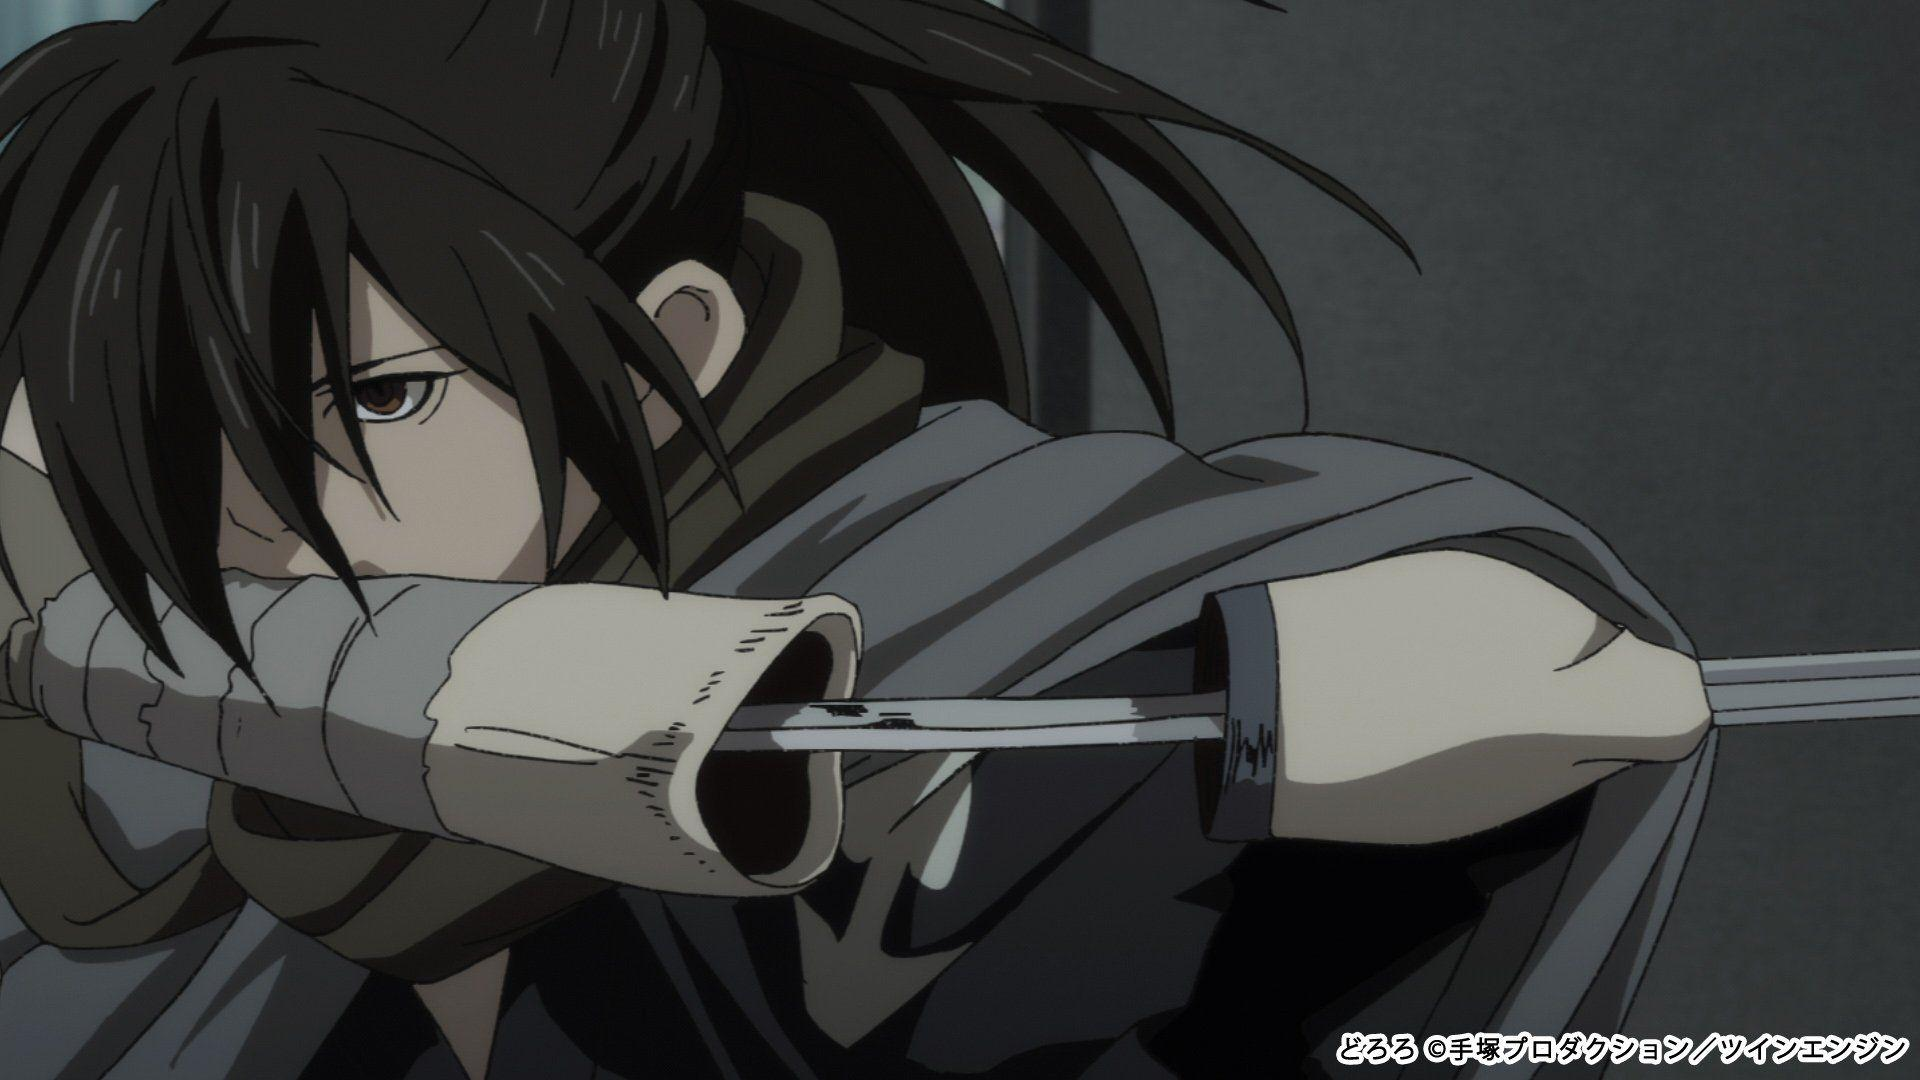 Hyakkimaru | Dororo Wiki | FANDOM powered by Wikia